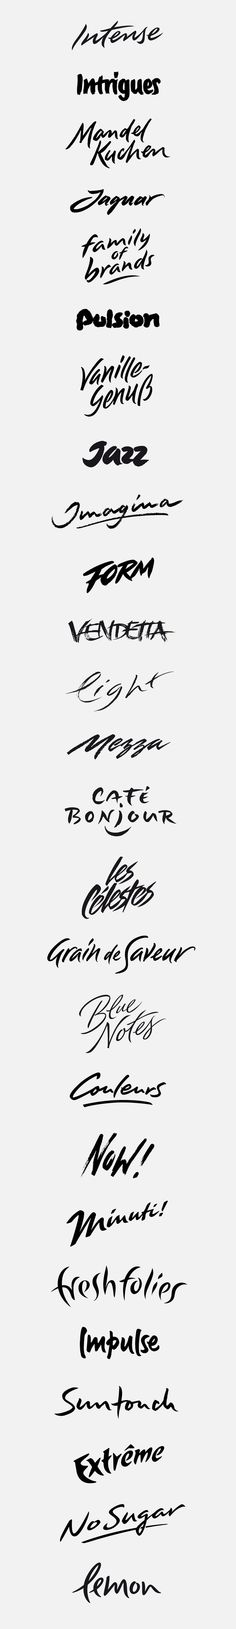 logotypes: expressiv, dynamic by Peter Becker, via Behance